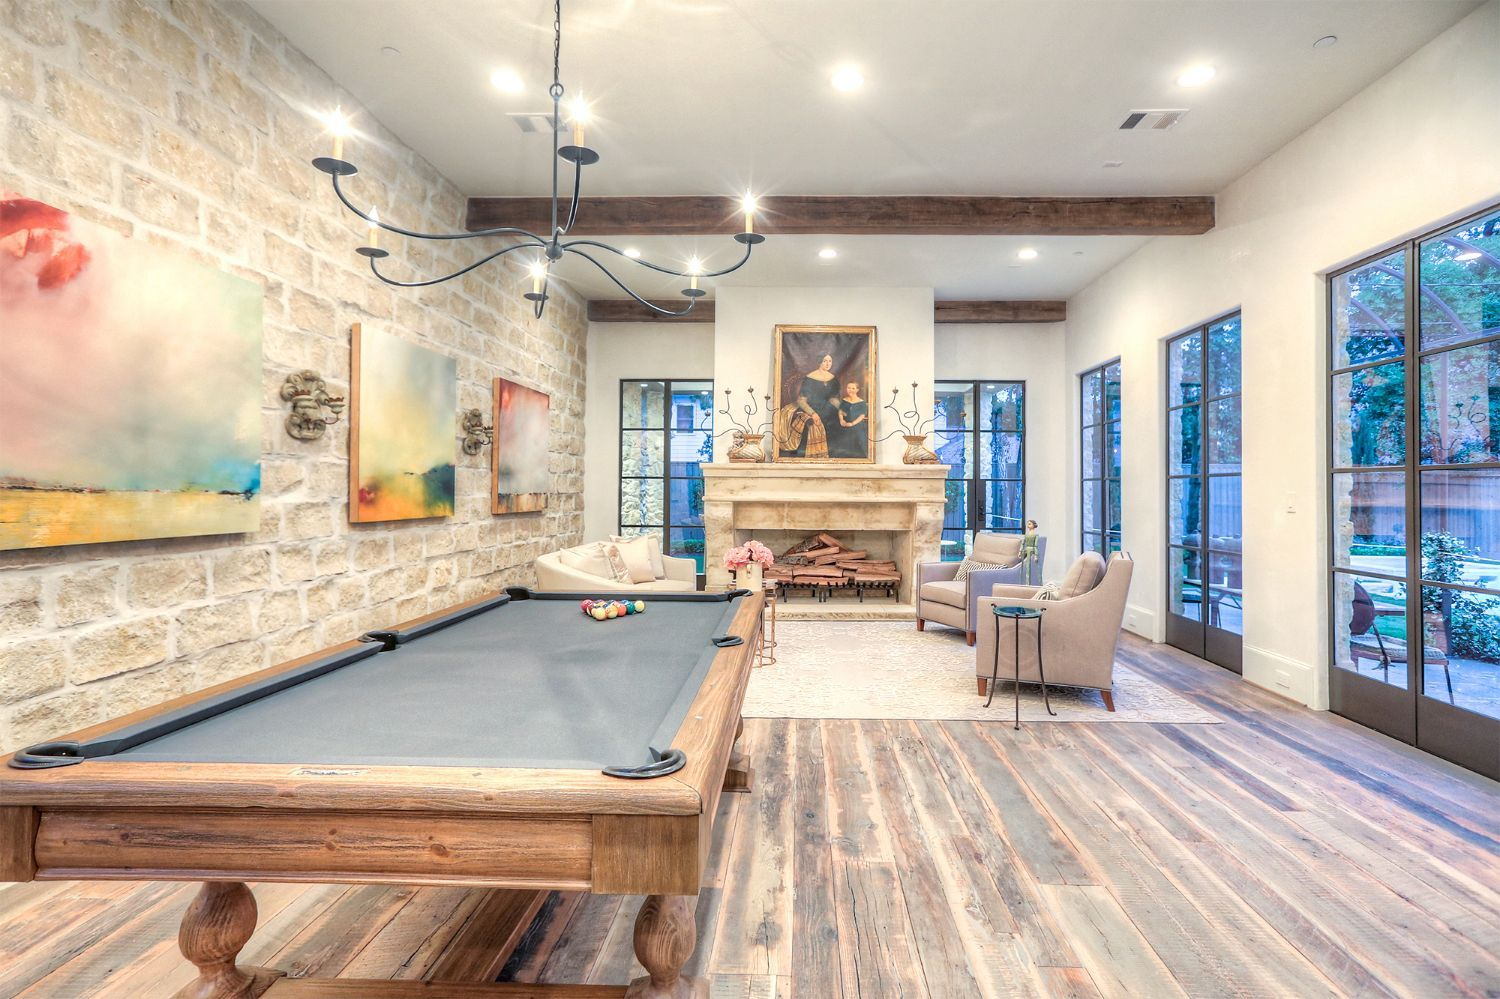 Game Room With Pool Table Stone Accent Wall Wood Floors Wood Beams Tracy Design Studio 2 Luxesource House And Home Magazine Provence Style Design